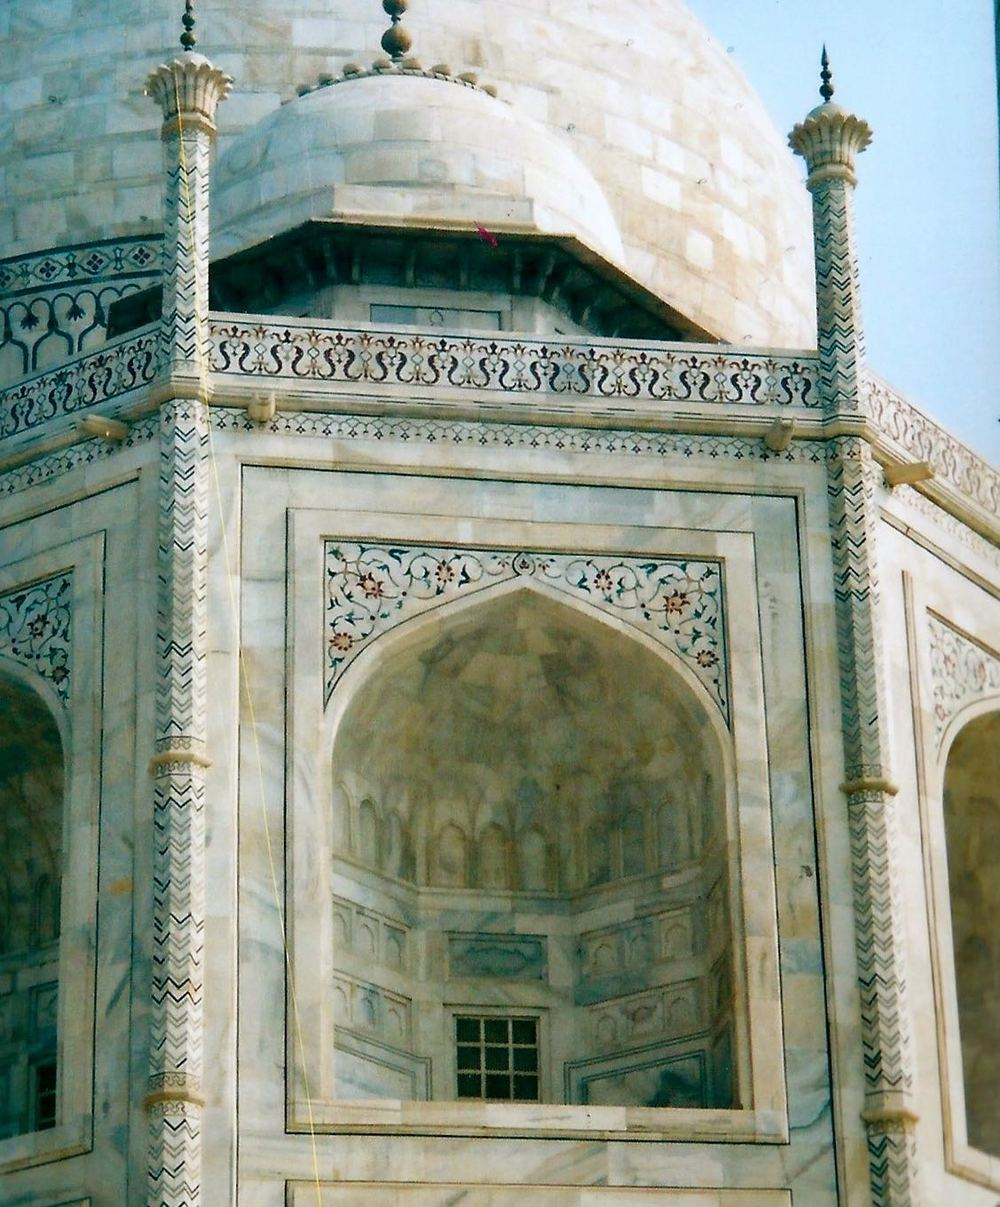 DETAILED MOSAICS ON THE TAJ MAHAL